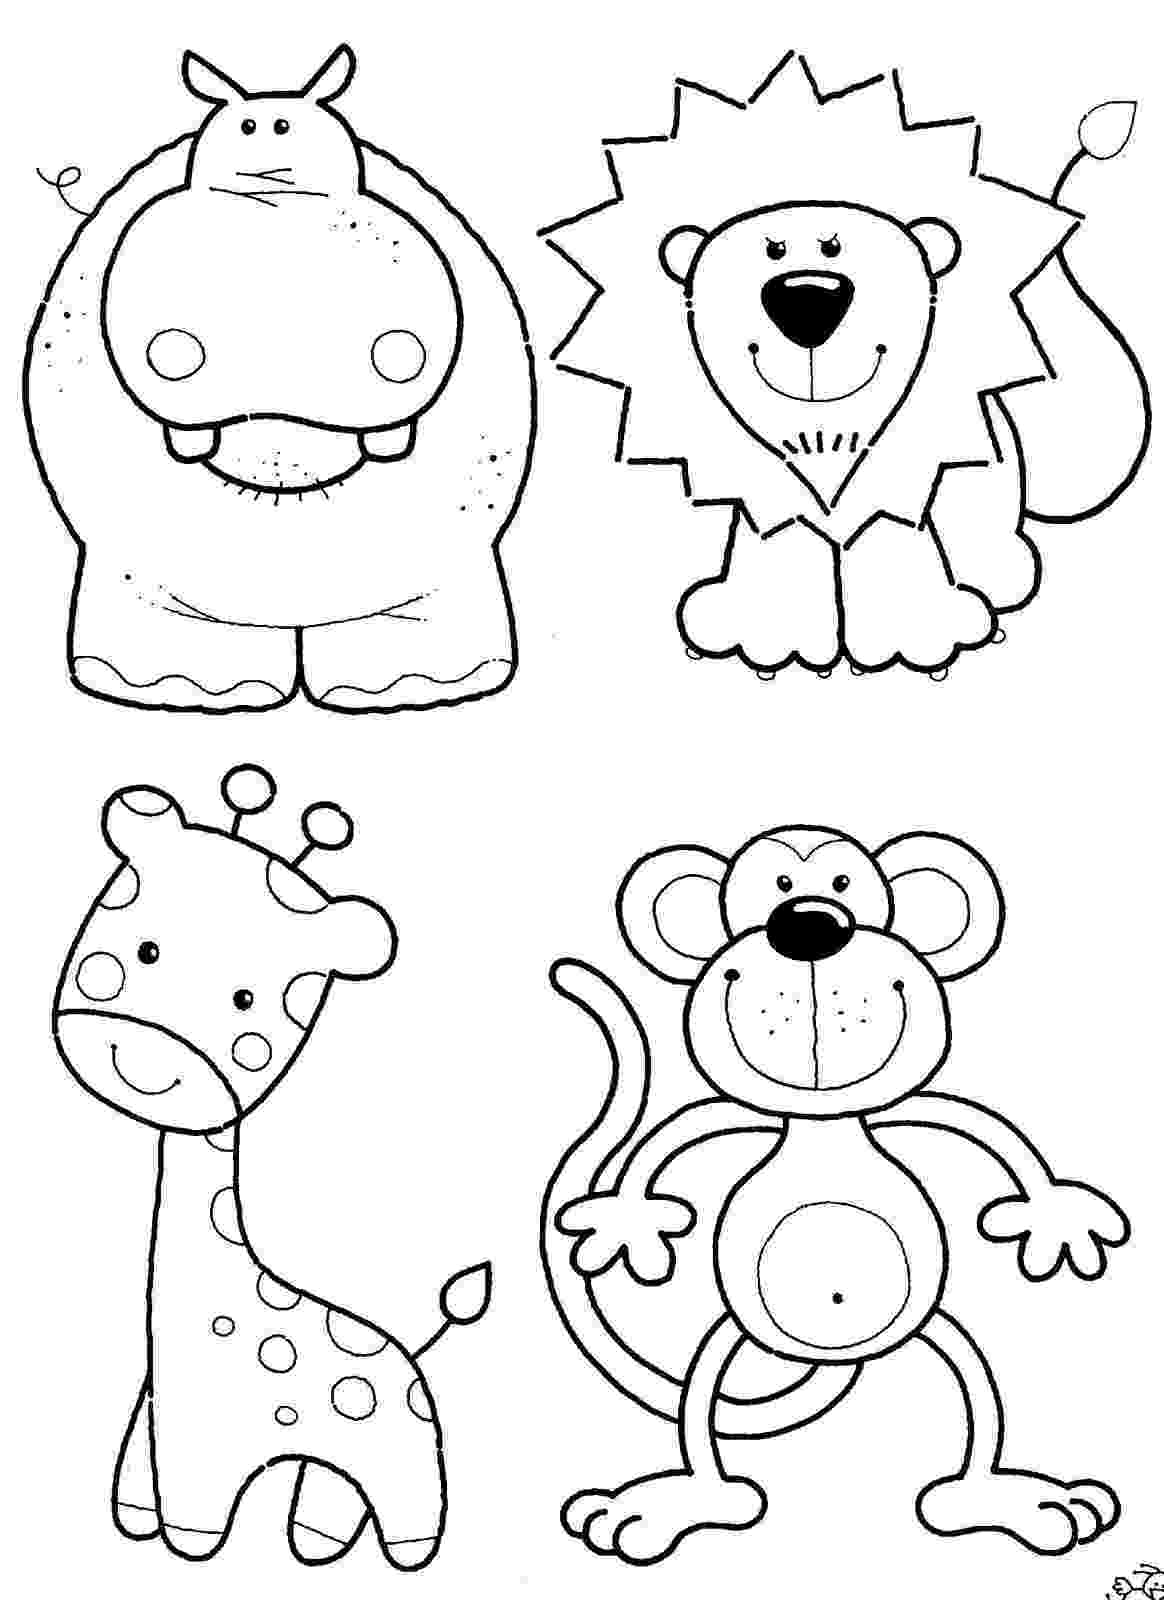 coloring baby animals cute animal coloring pages best coloring pages for kids baby coloring animals 1 1